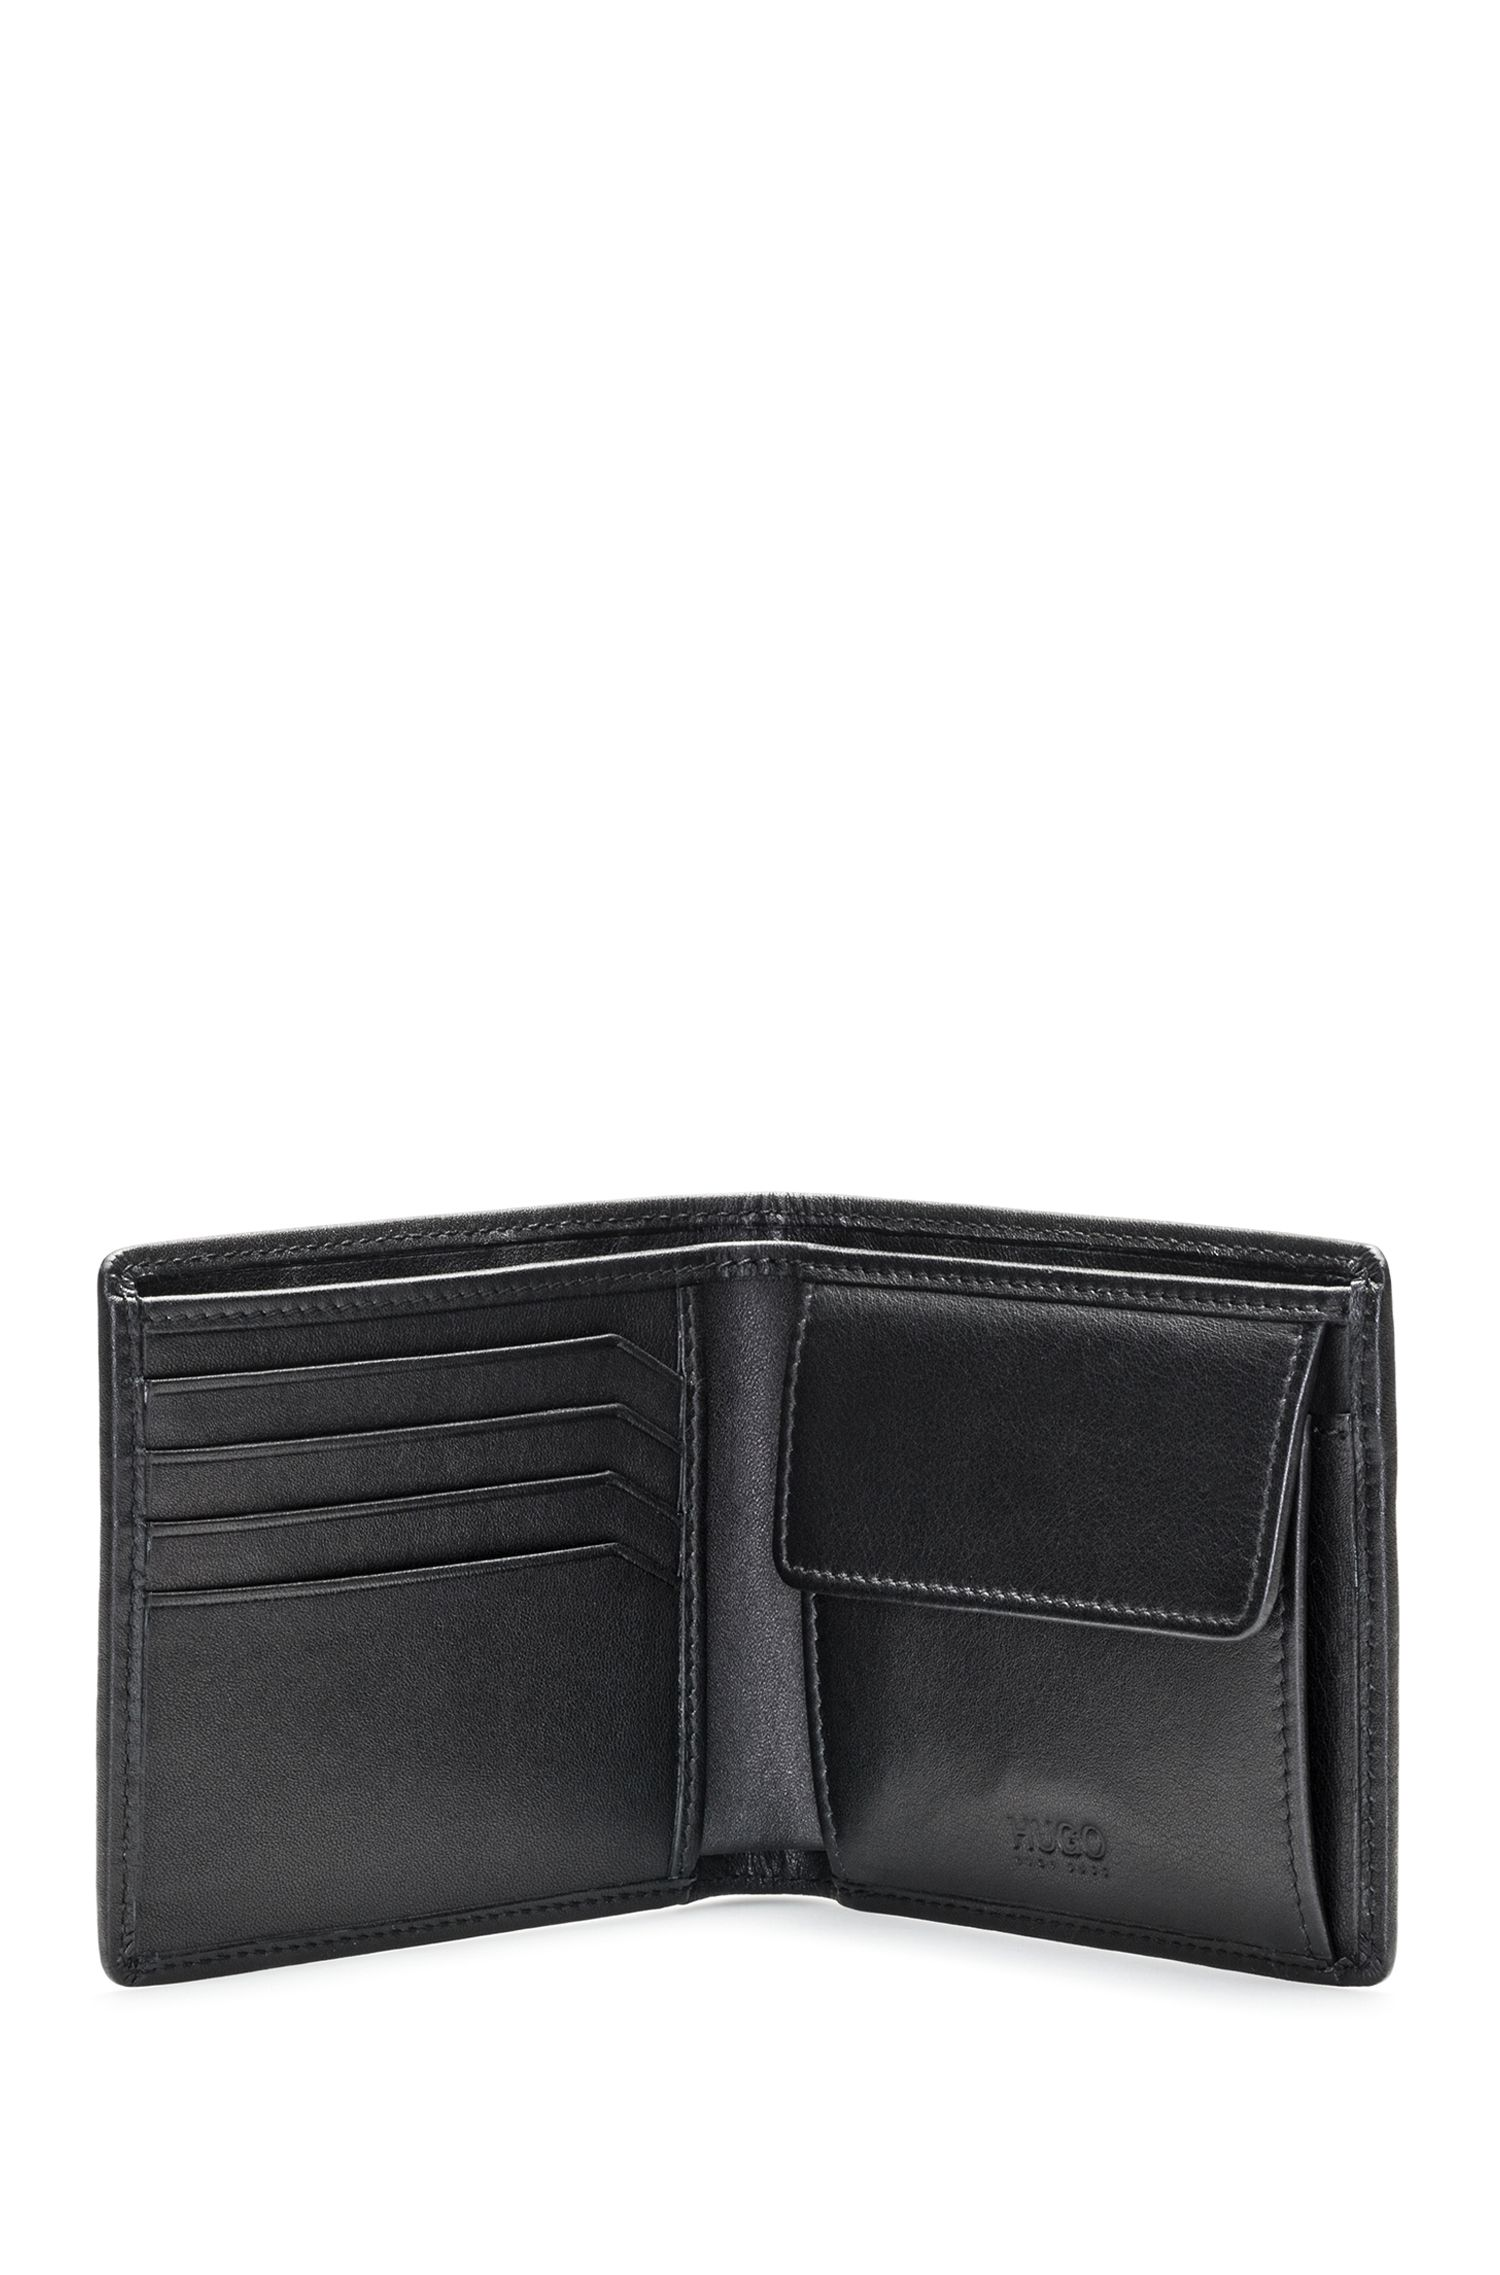 Leather billfold wallet with coin pouch and reverse logo